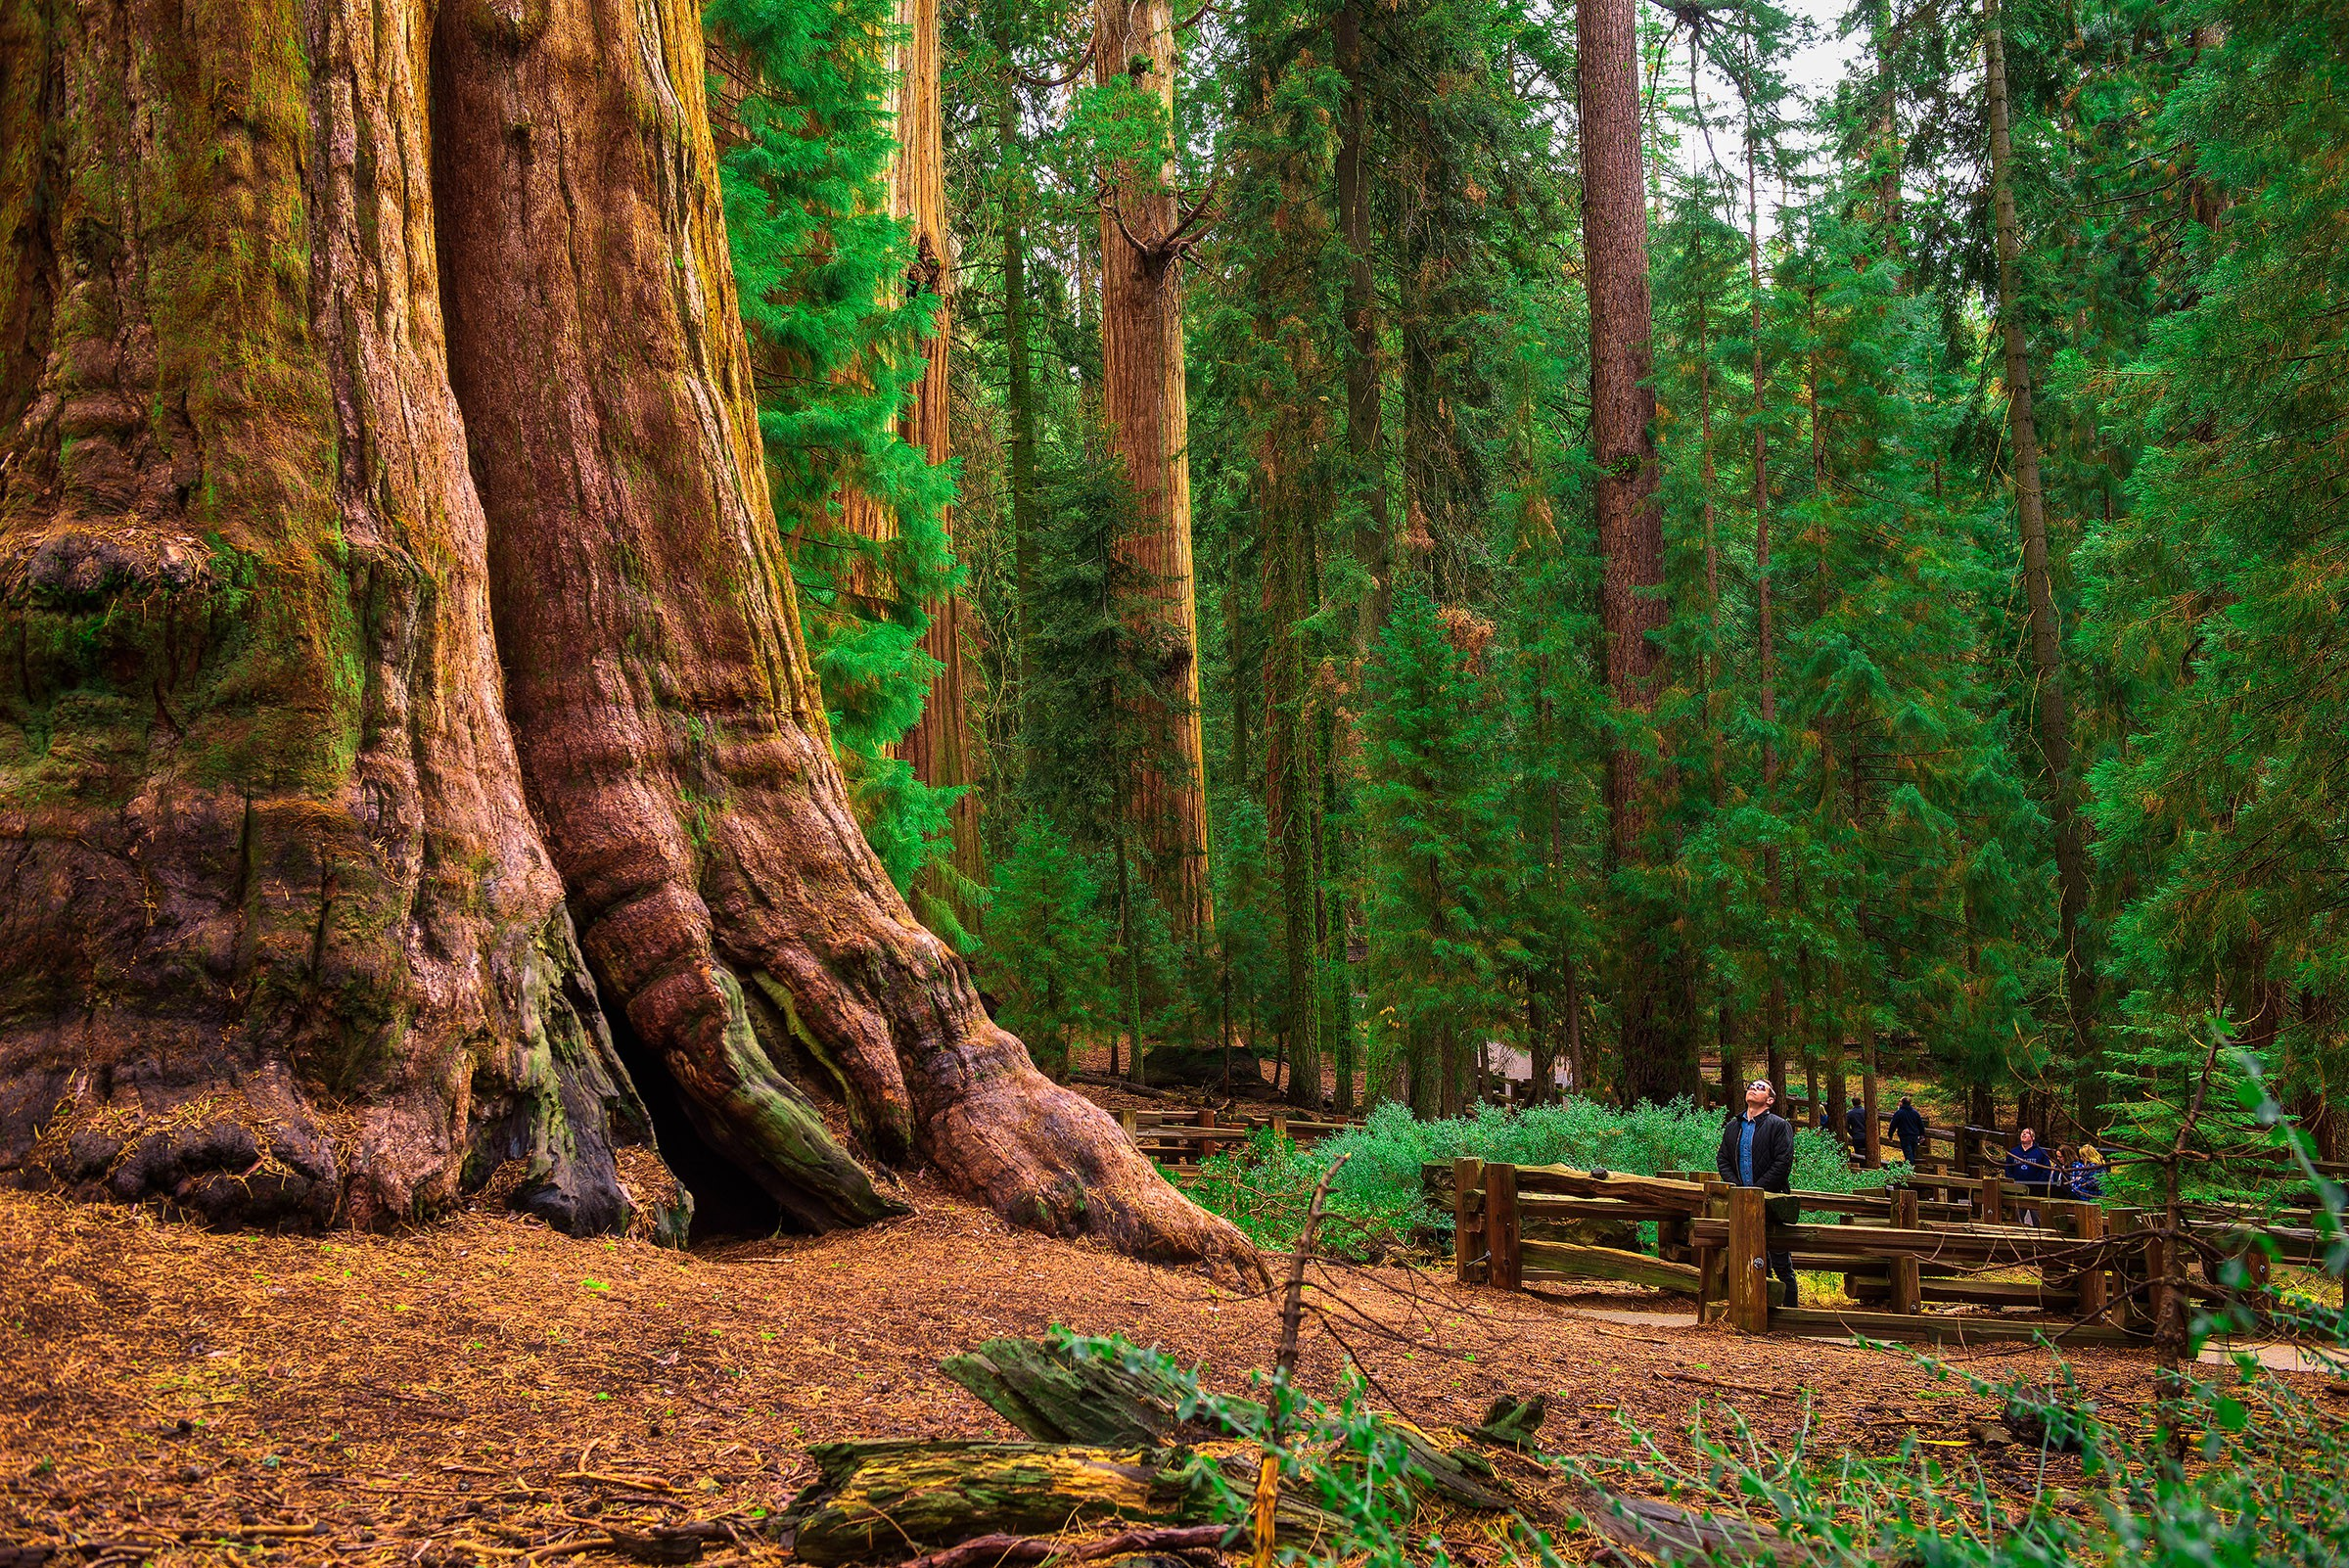 Giant Sequoias in National Park